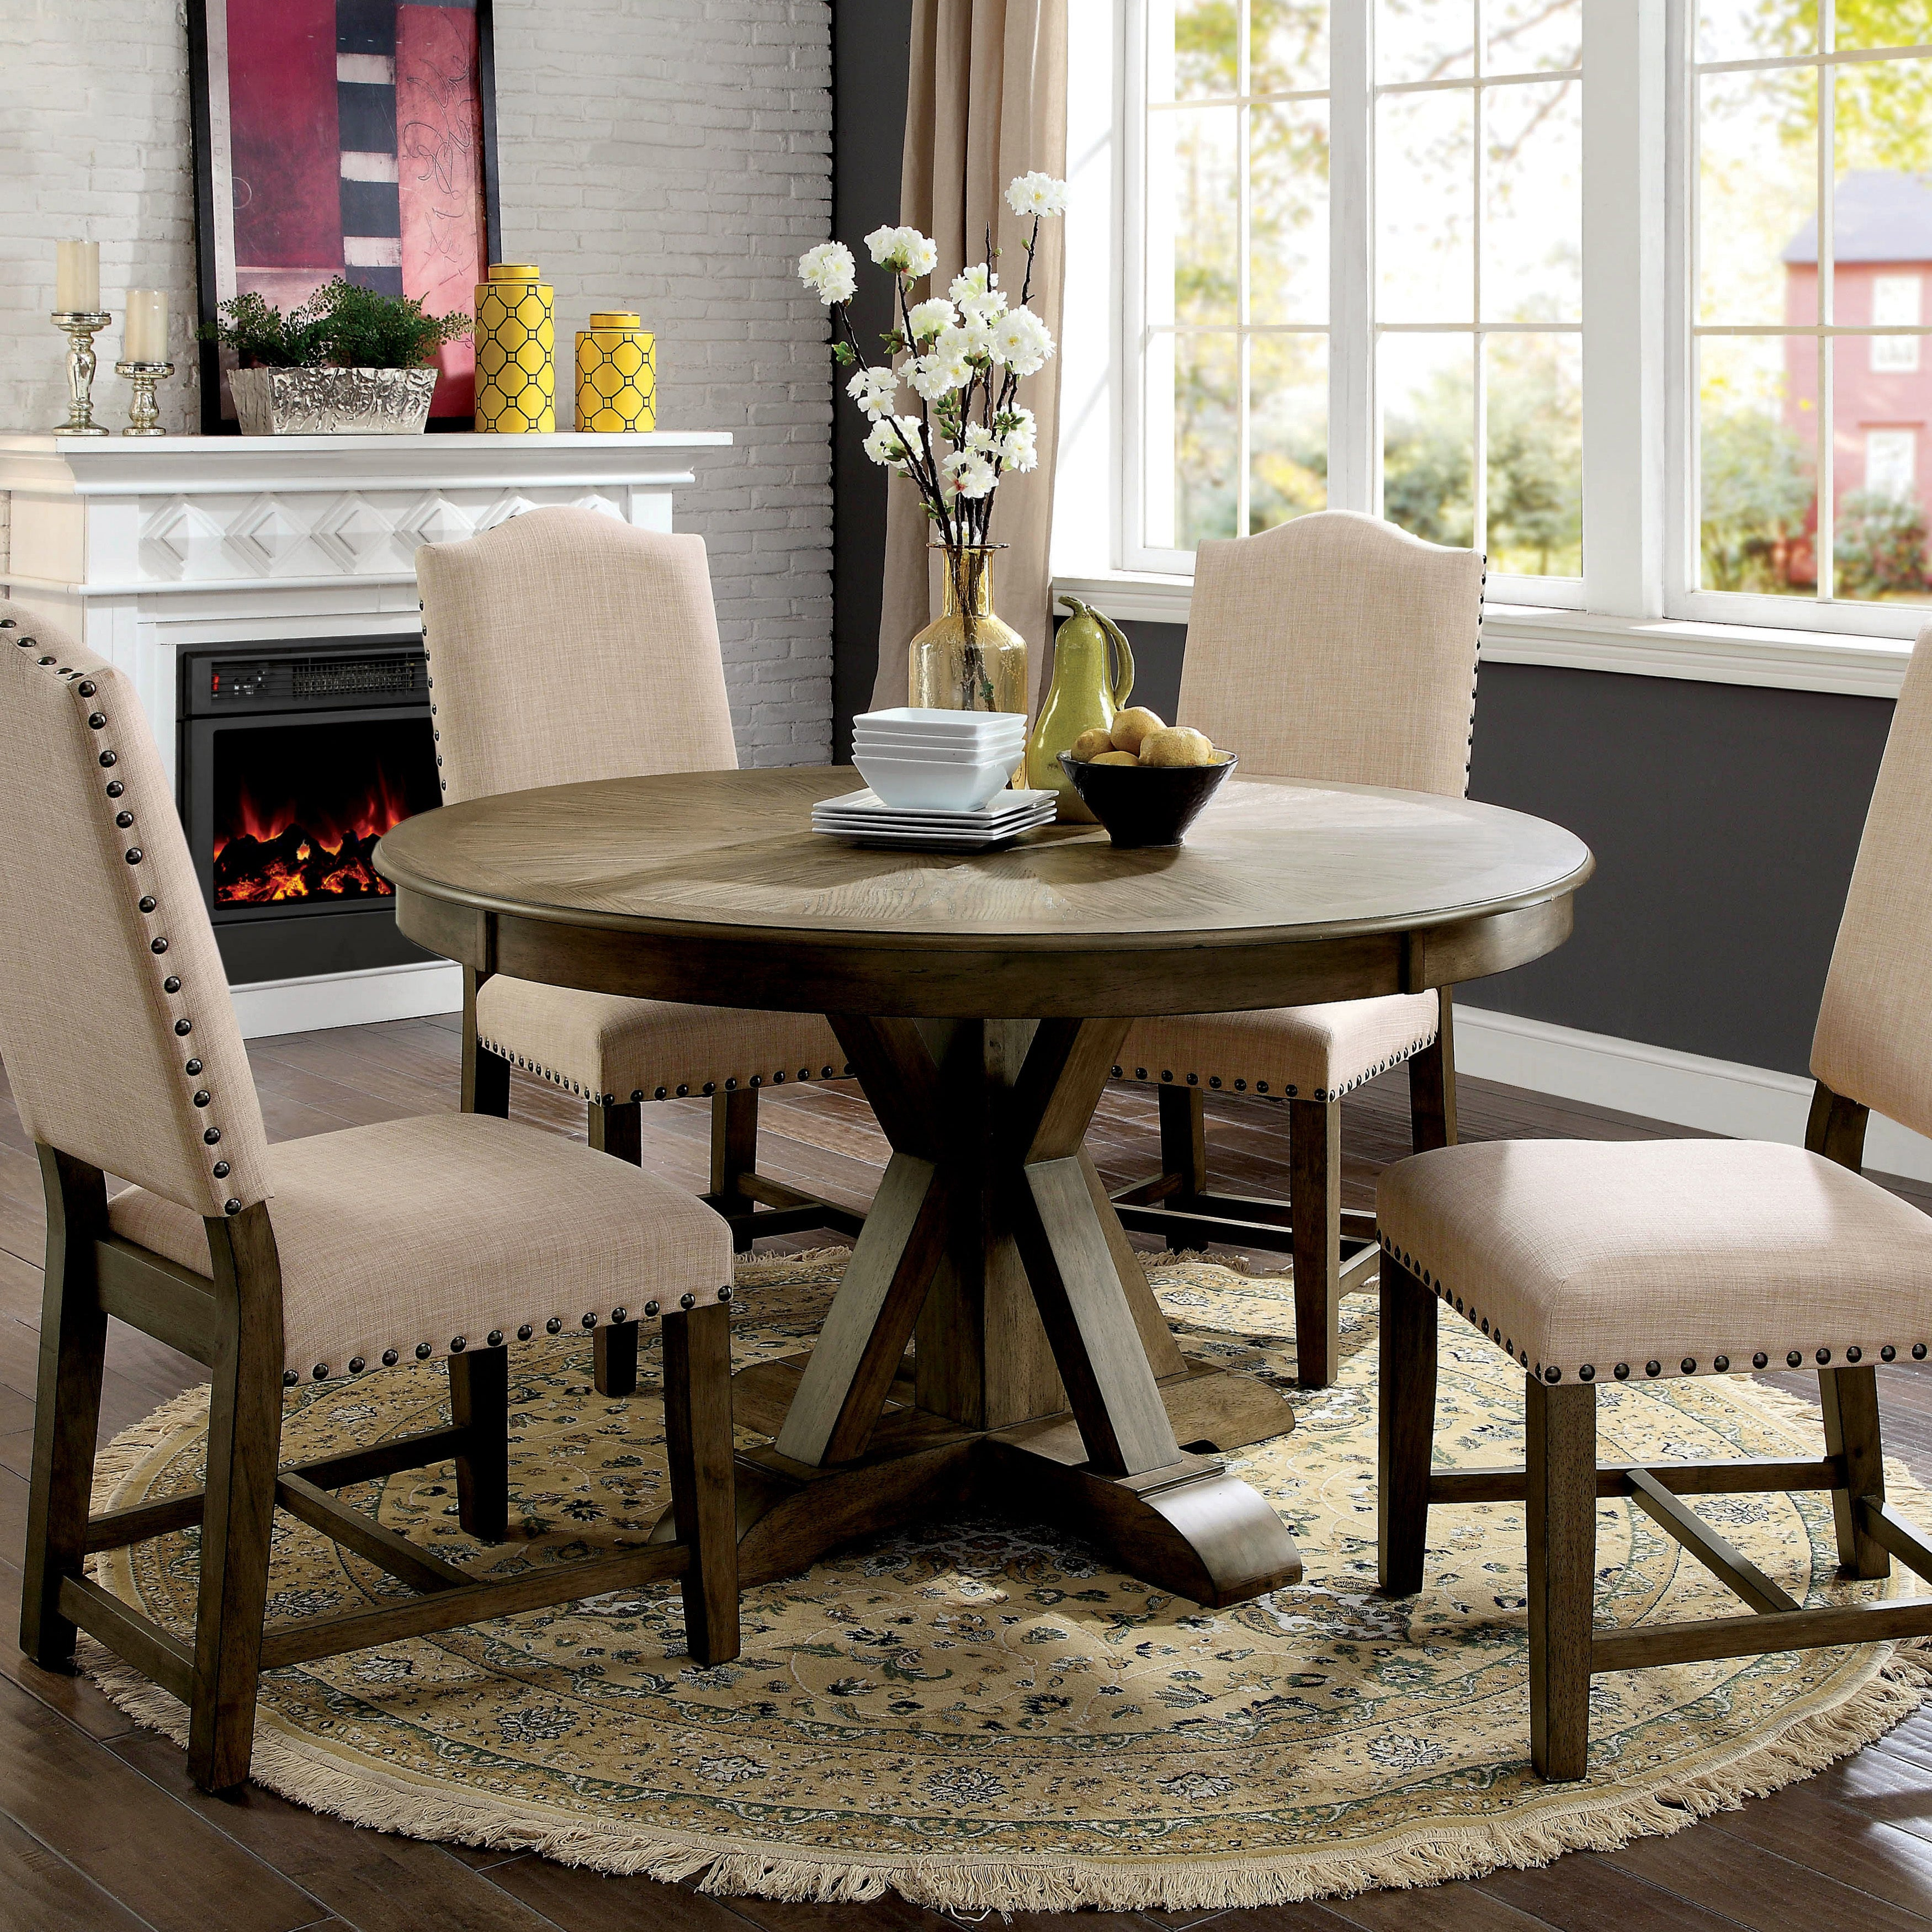 Furniture Of America Cooper Rustic Light Oak Round 54 Inch Pedestal Dining Table